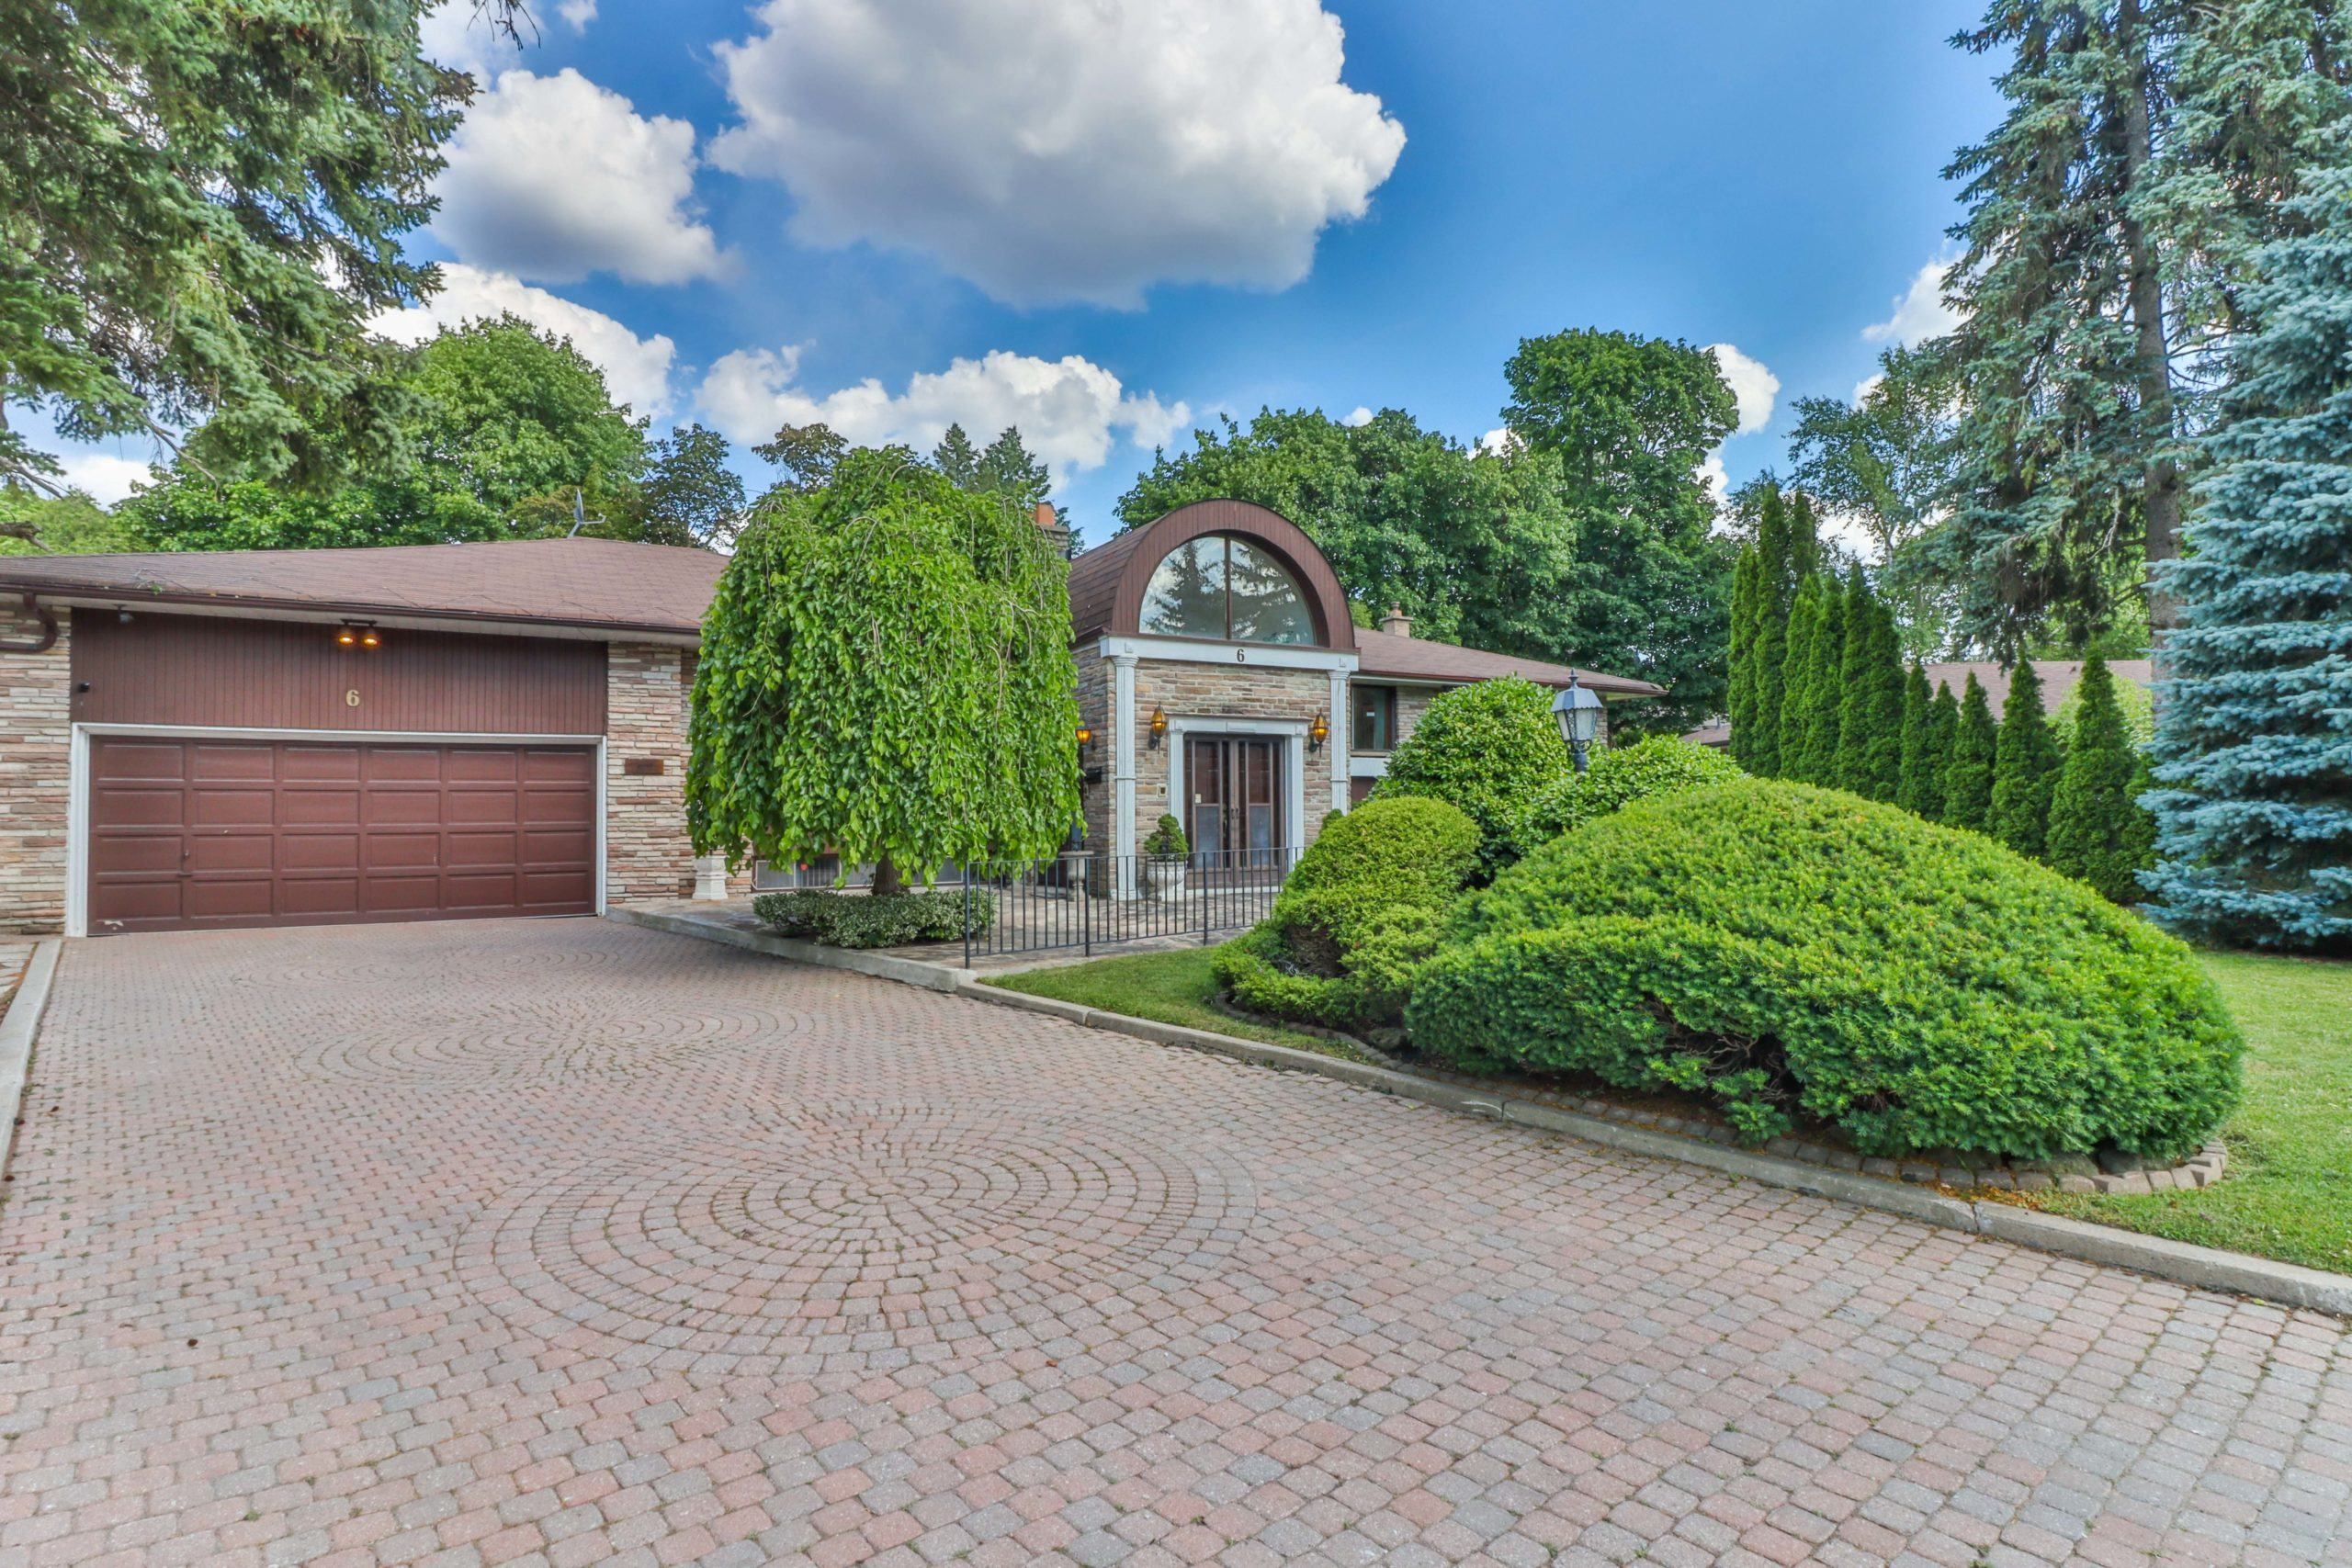 Photo of 6 parmbelle cres, a house with big driveway.